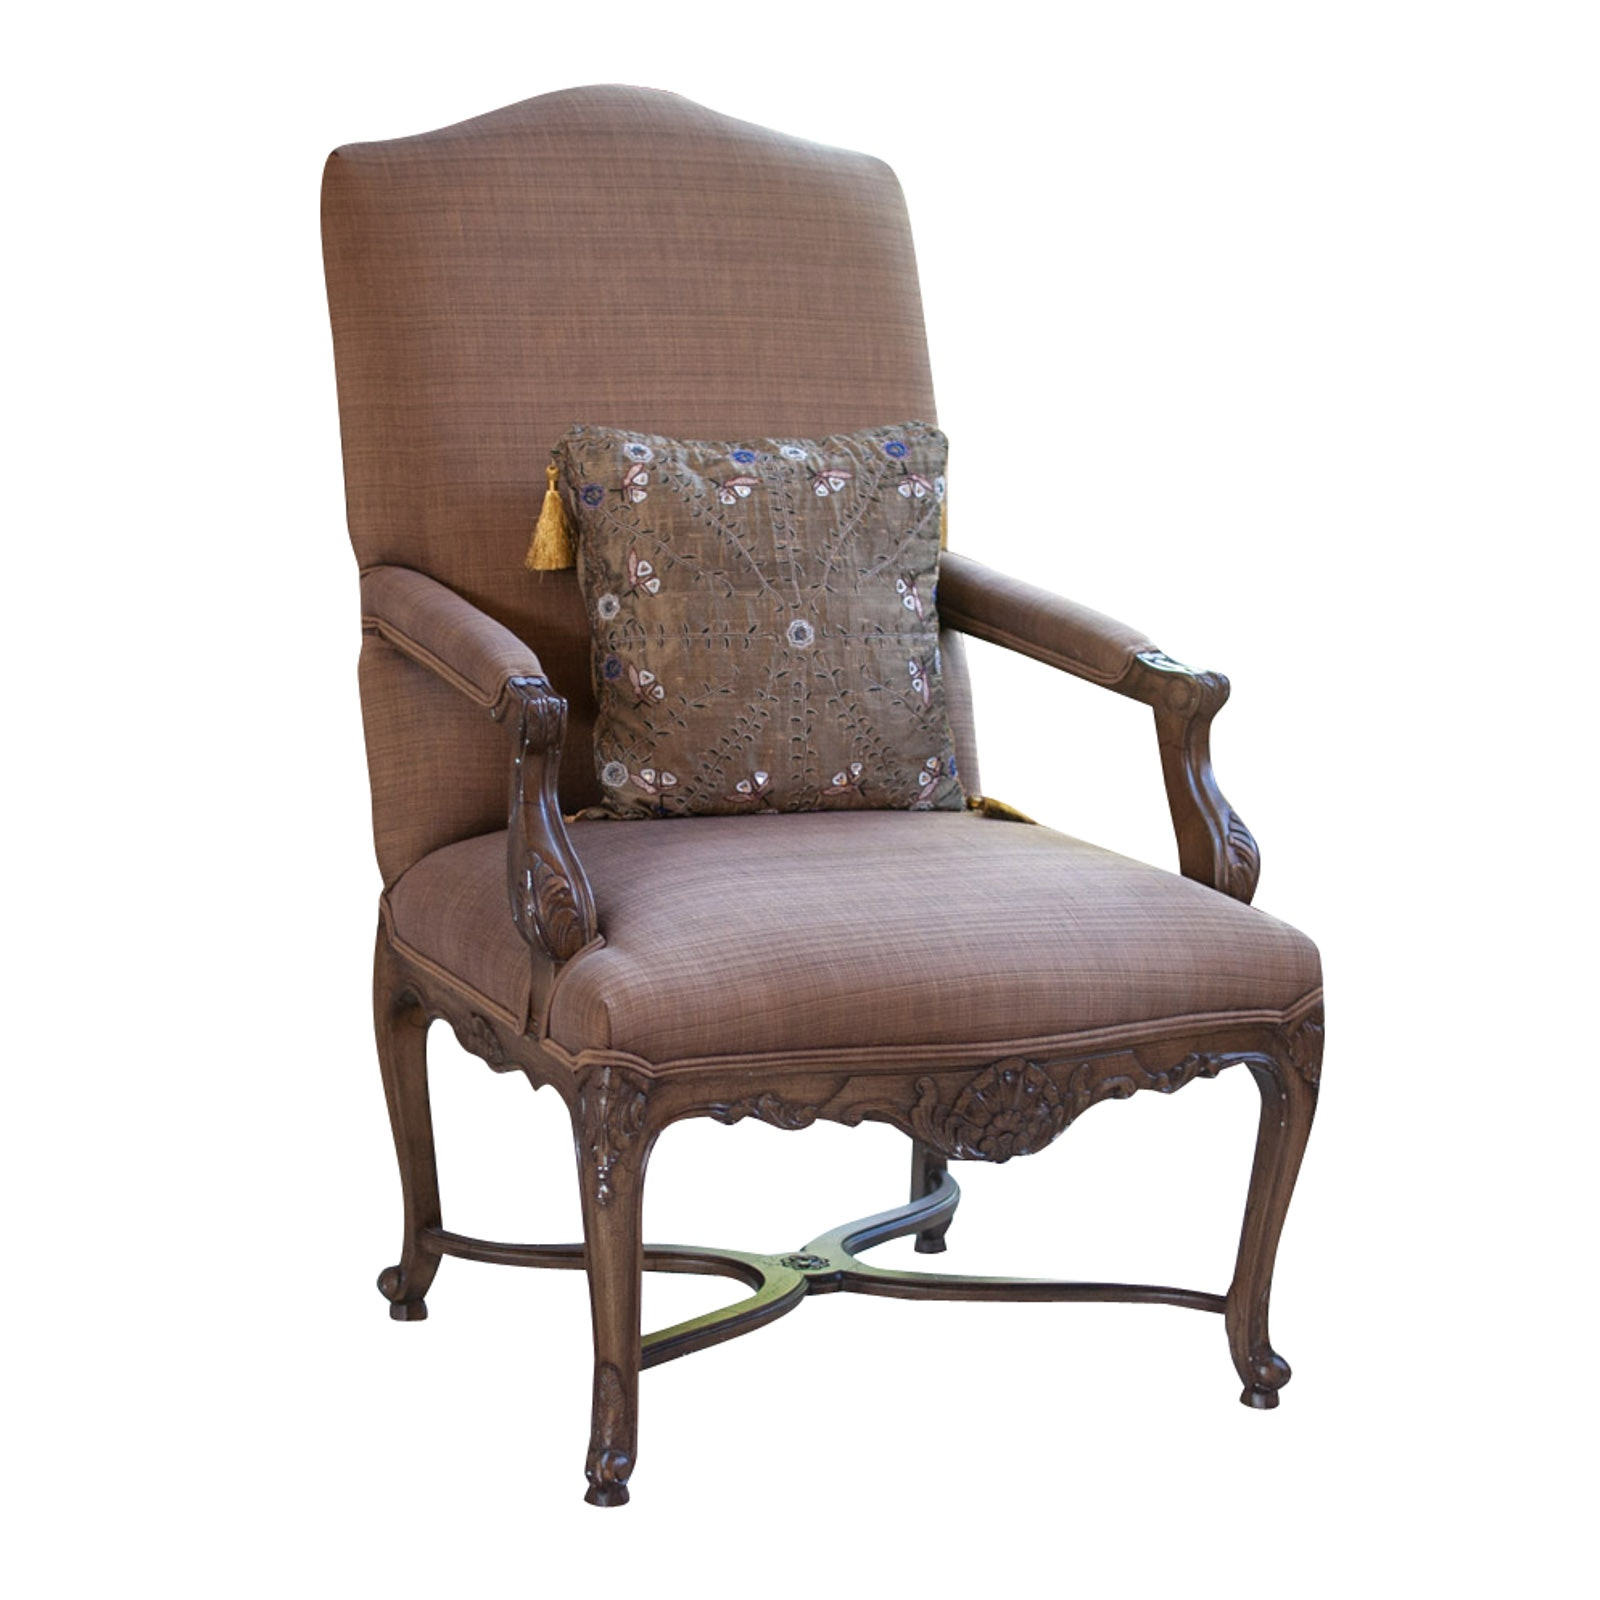 Baroque Style Upholstered Armchair, 20th Century